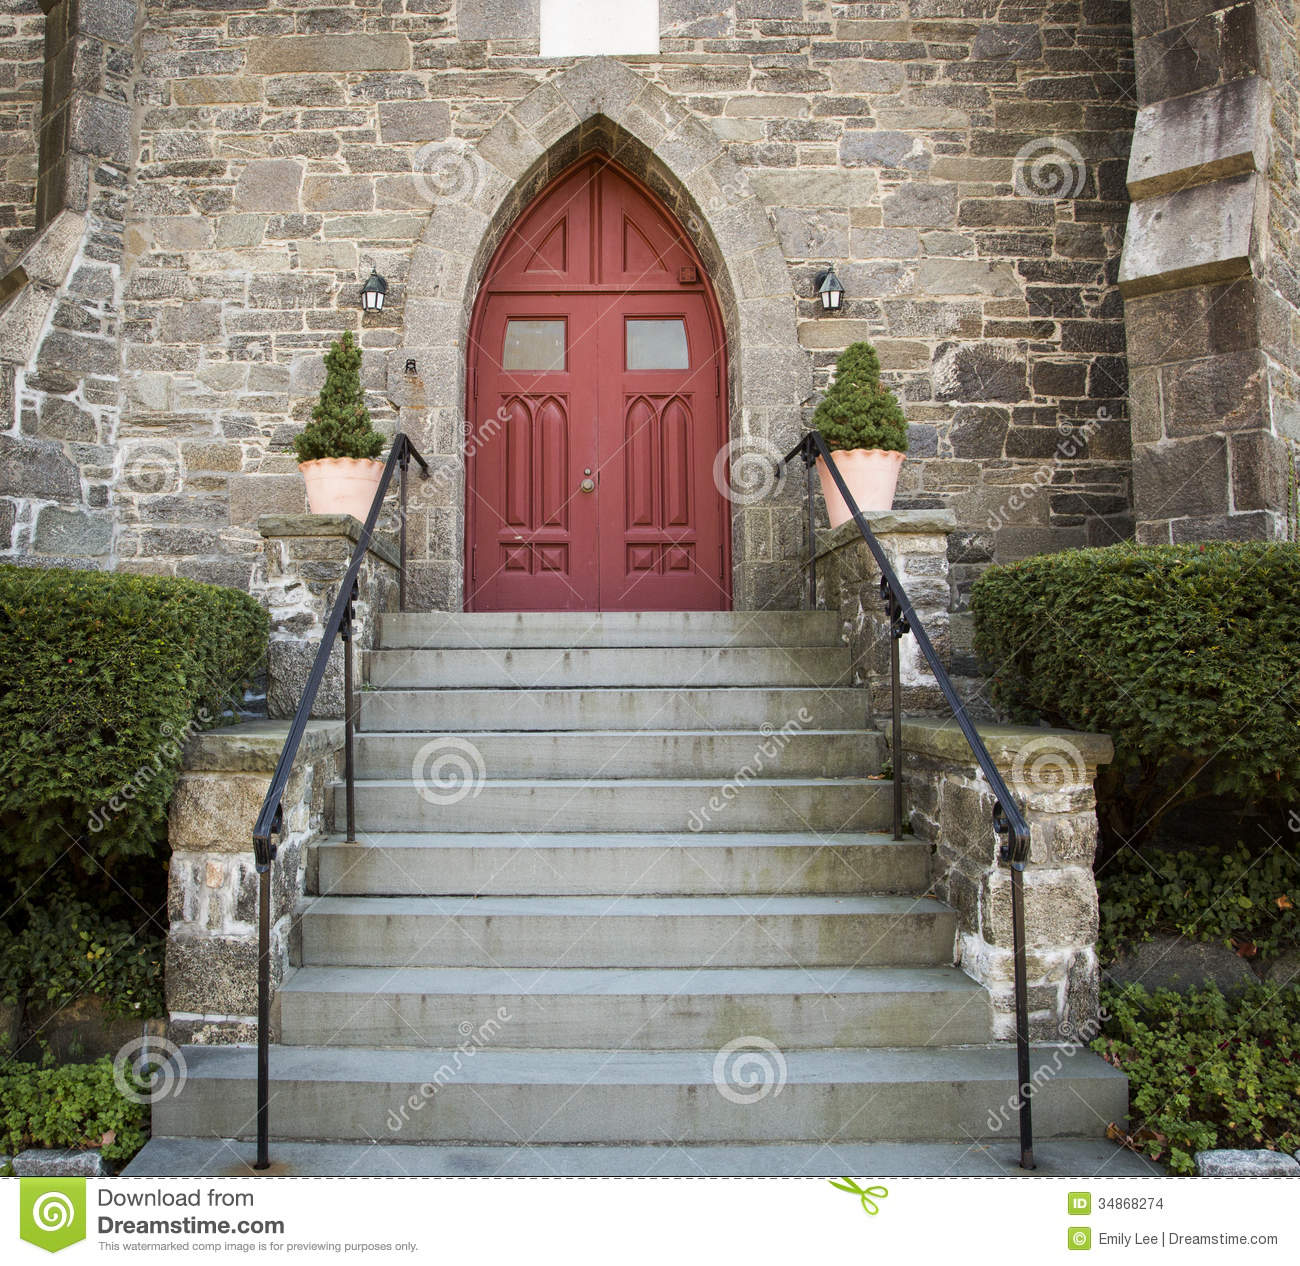 Steps lead up to a red door on this old stone church in Greenwich, CT.